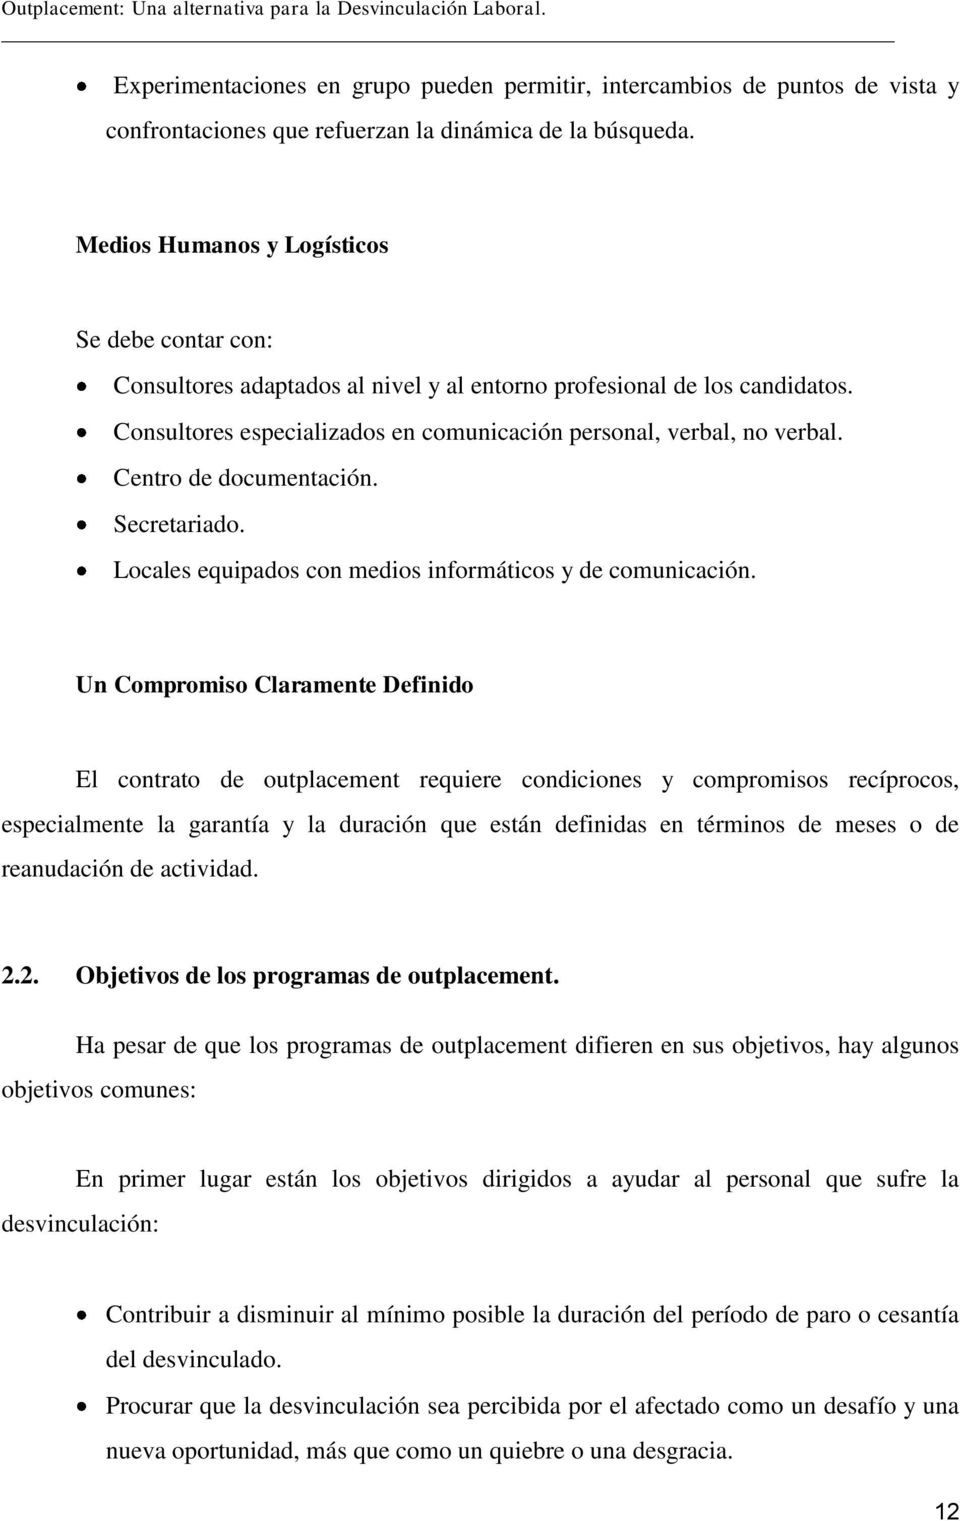 OUTPLACEMENT: UNA ALTERNATIVA PARA LA DESVINCULACION LABORAL. - PDF